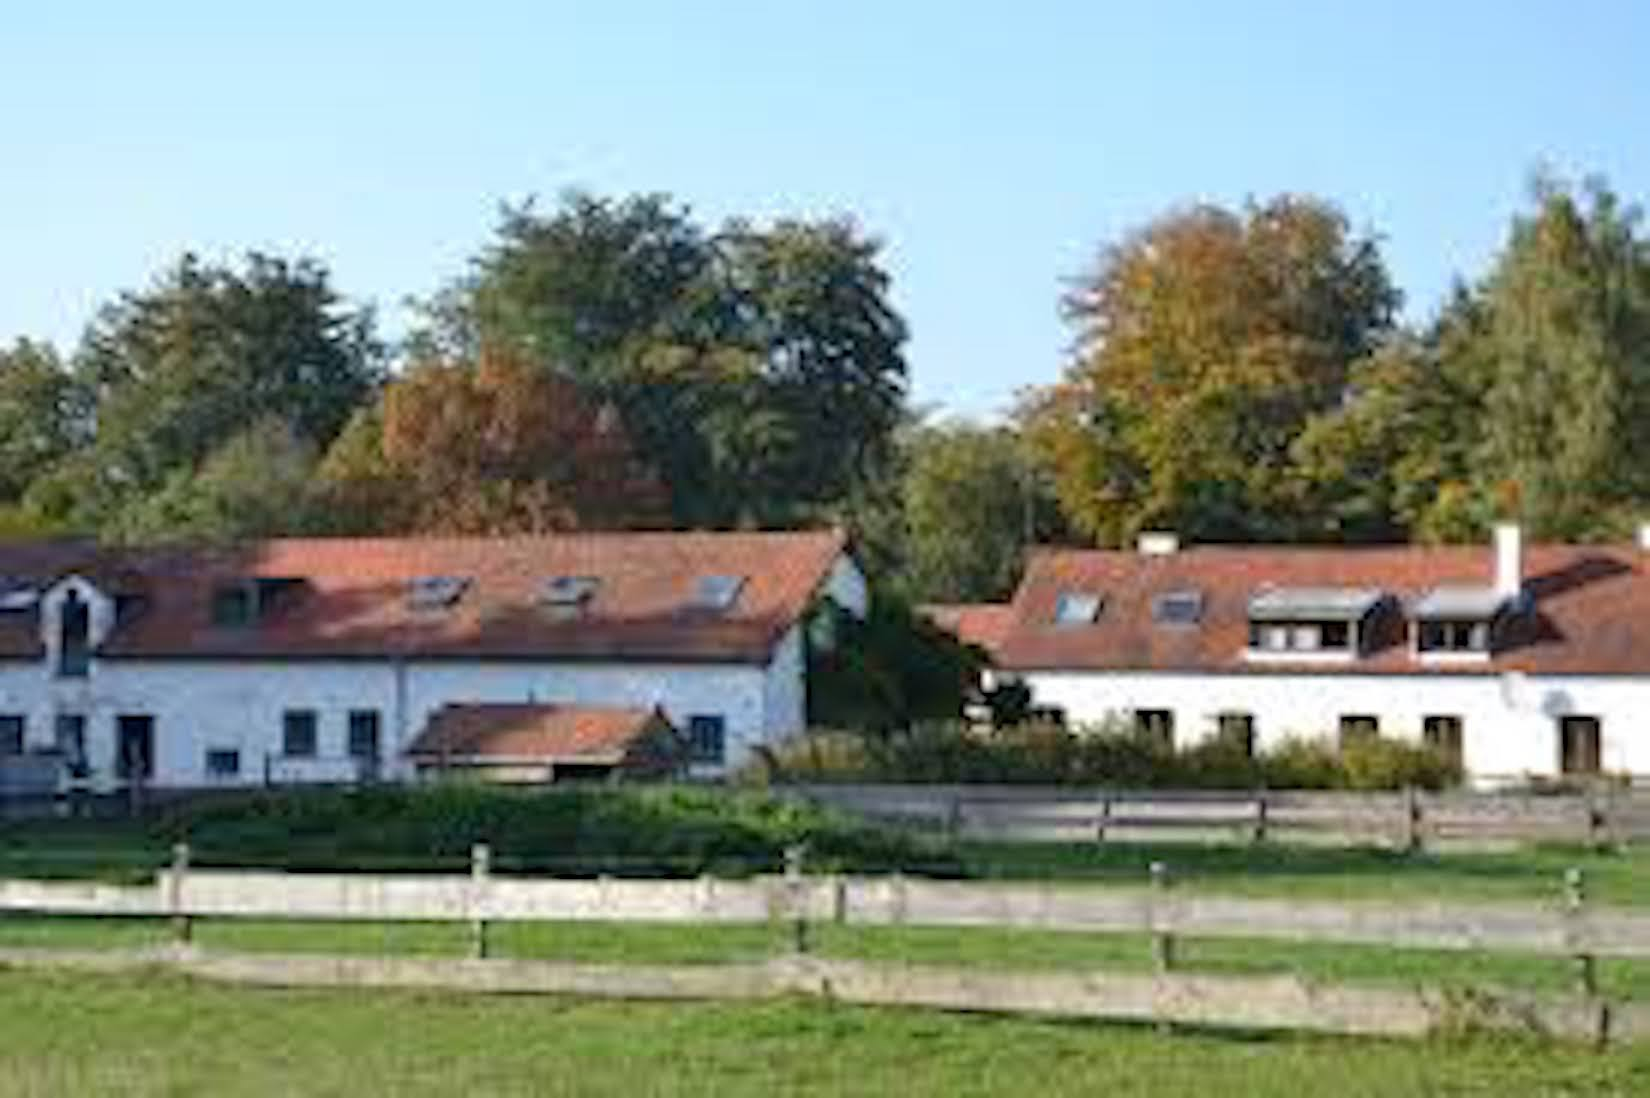 A house with trees in the background at Ferme De La Houlotte.